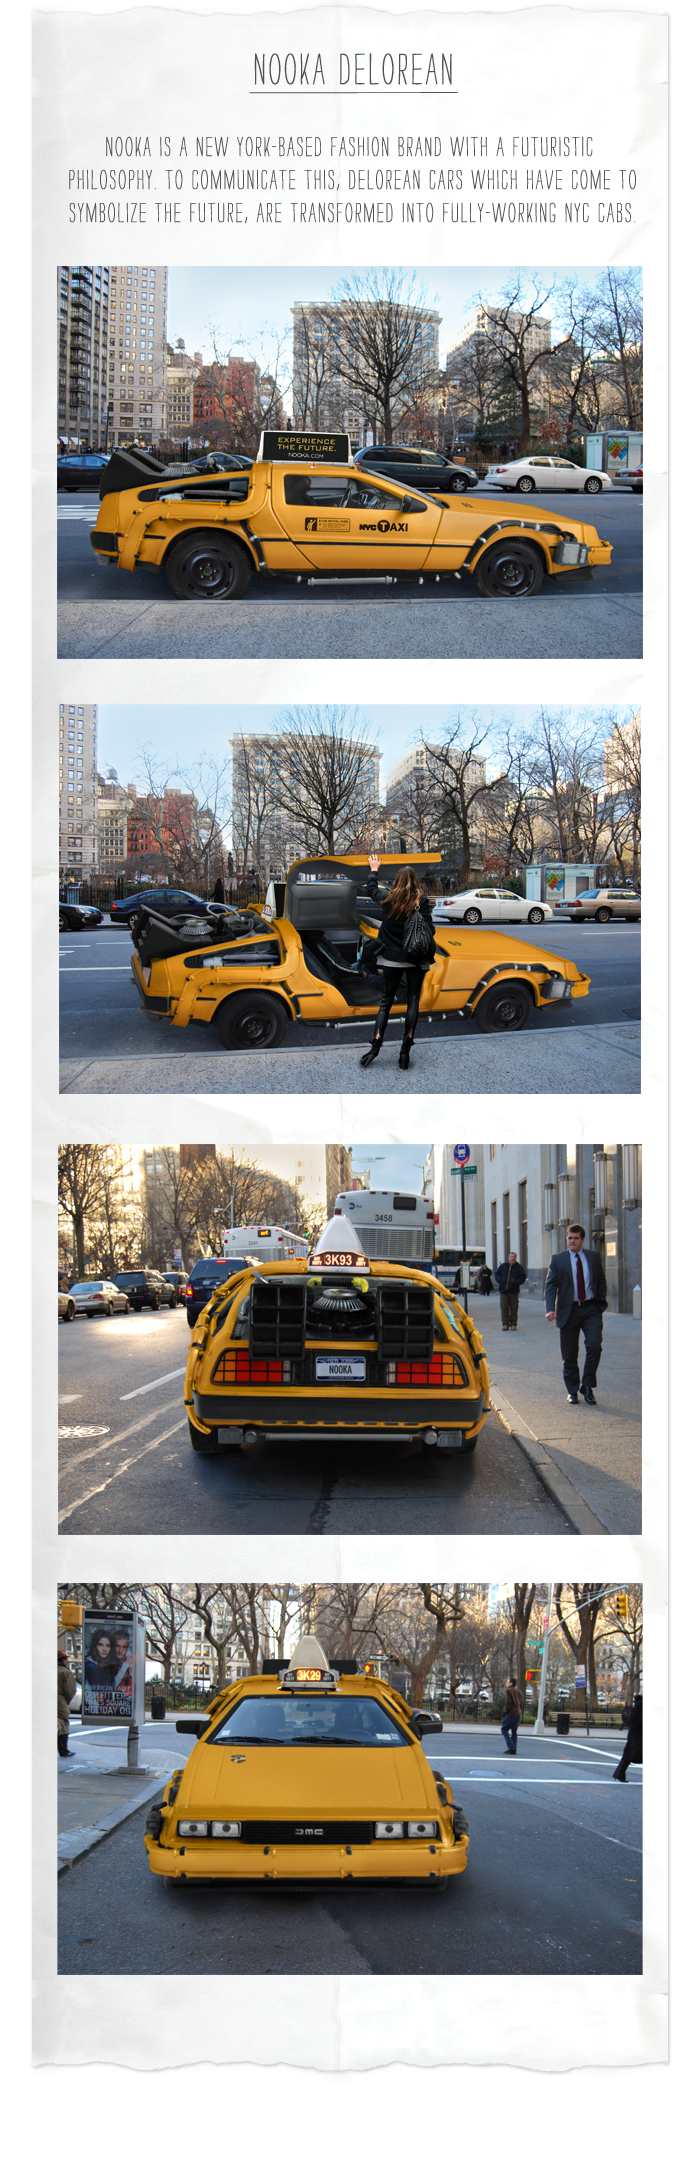 Nooka, a New-York fashion brand has created an advertising campaign transforming the famous New York yellow cabs into a back to the future deloeran taxi. Designed by Michael J Lubrano